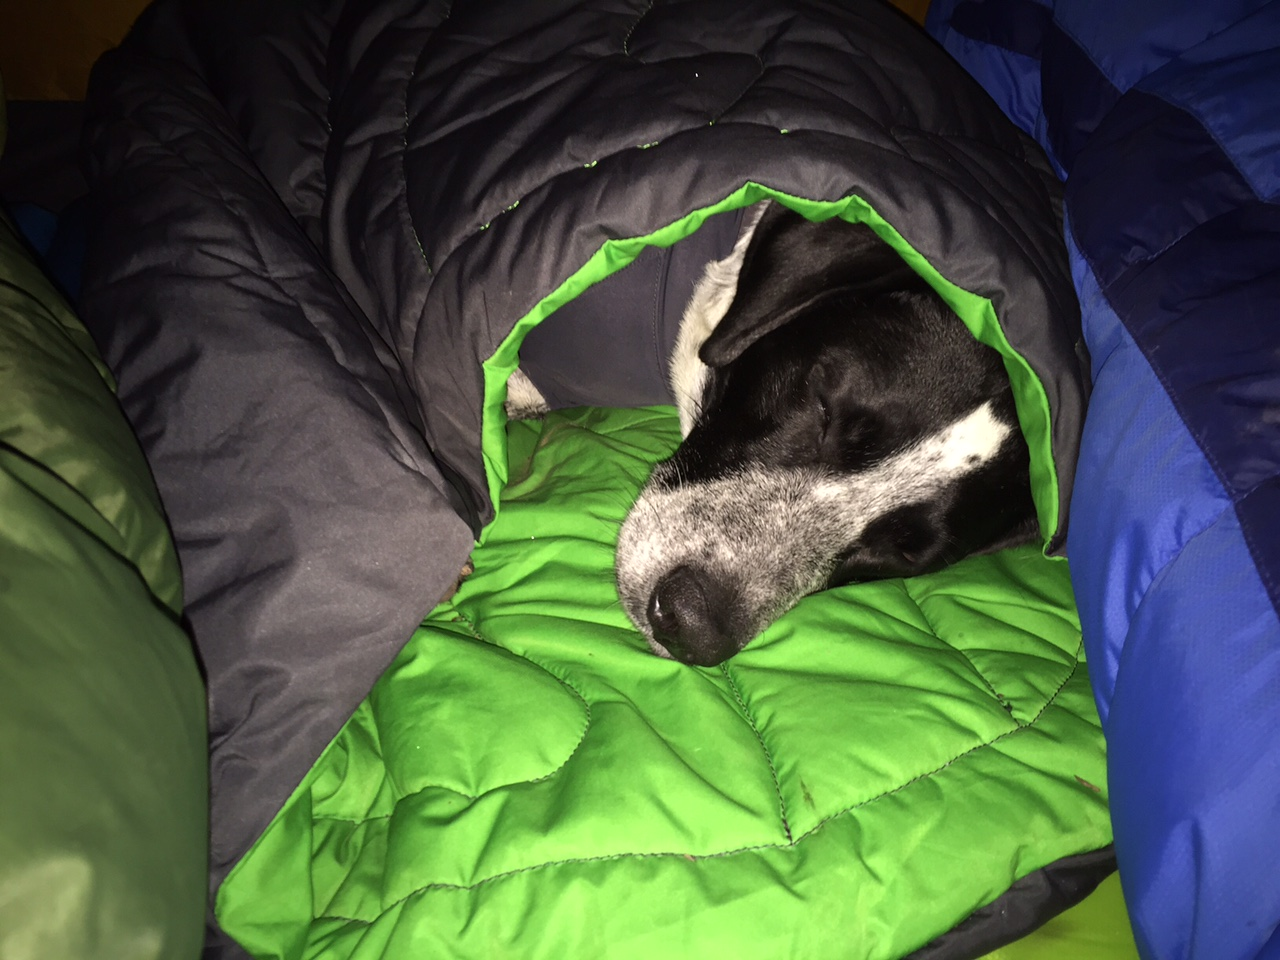 Posh Not Only Was This Combination It Humans To Sit While We Were Hanging Out At Landing Padis Durable Gear Ruffwear Sleep System Colorado Canine Acted As A Spot baby Dog Sleeping Bag